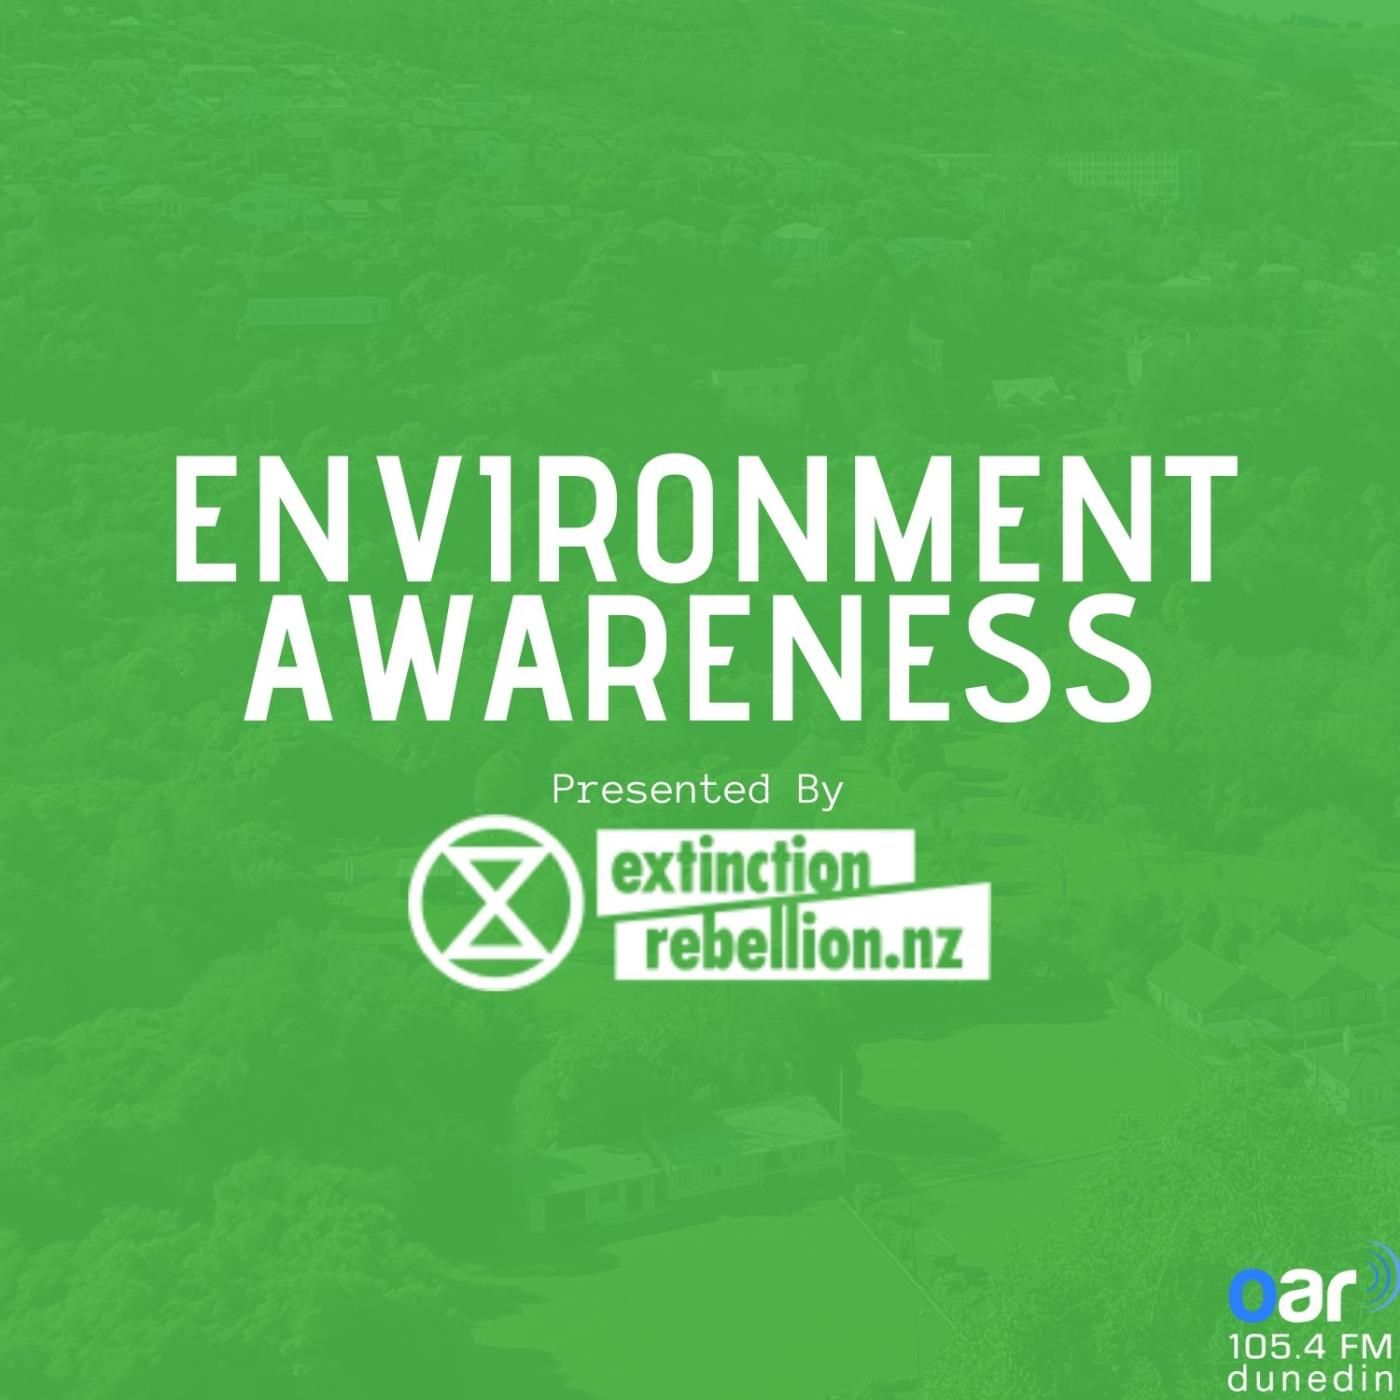 Environment Awareness - 18-06-2020 - Show 37 - Jen and Danika talk about activism